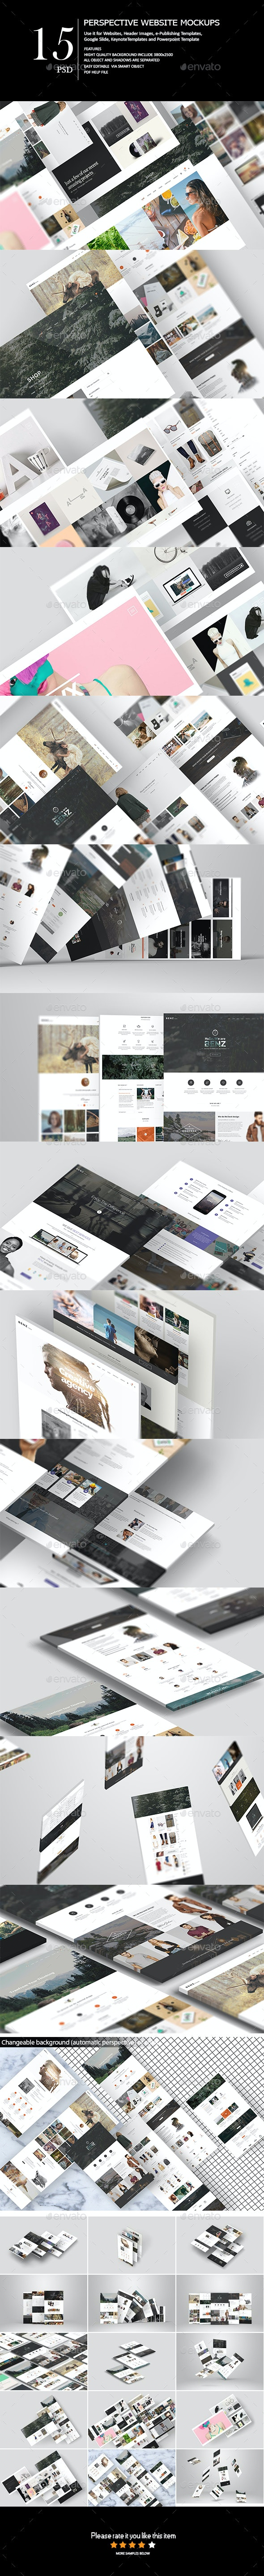 Perspective Web Mock-Up - Miscellaneous Product Mock-Ups